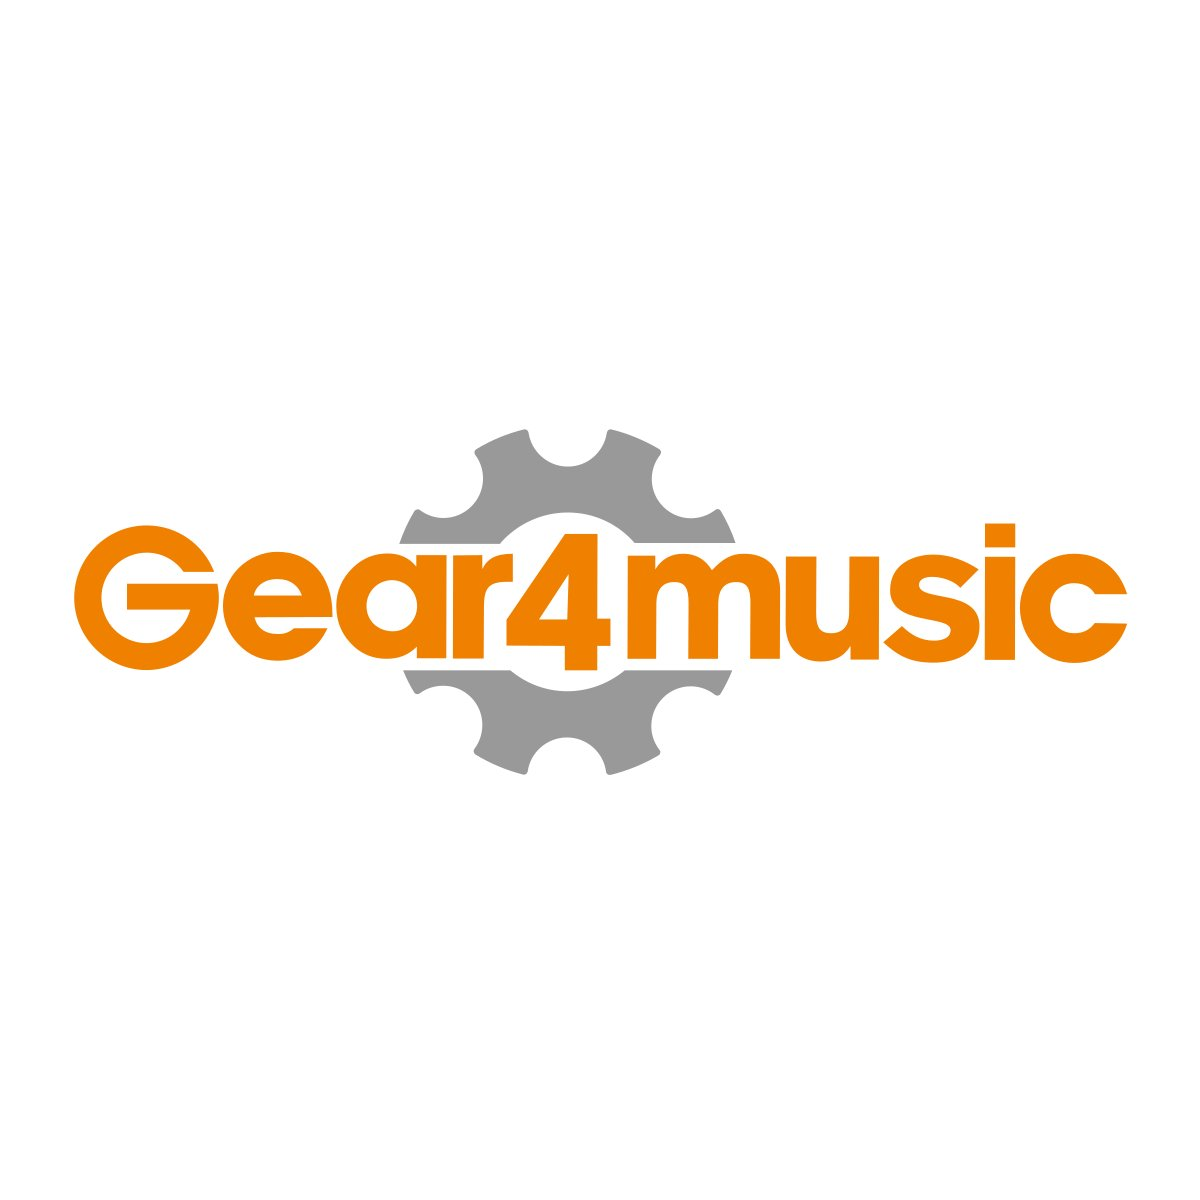 12-saitige Dreadnought-Akustikgitarre von Gear4music